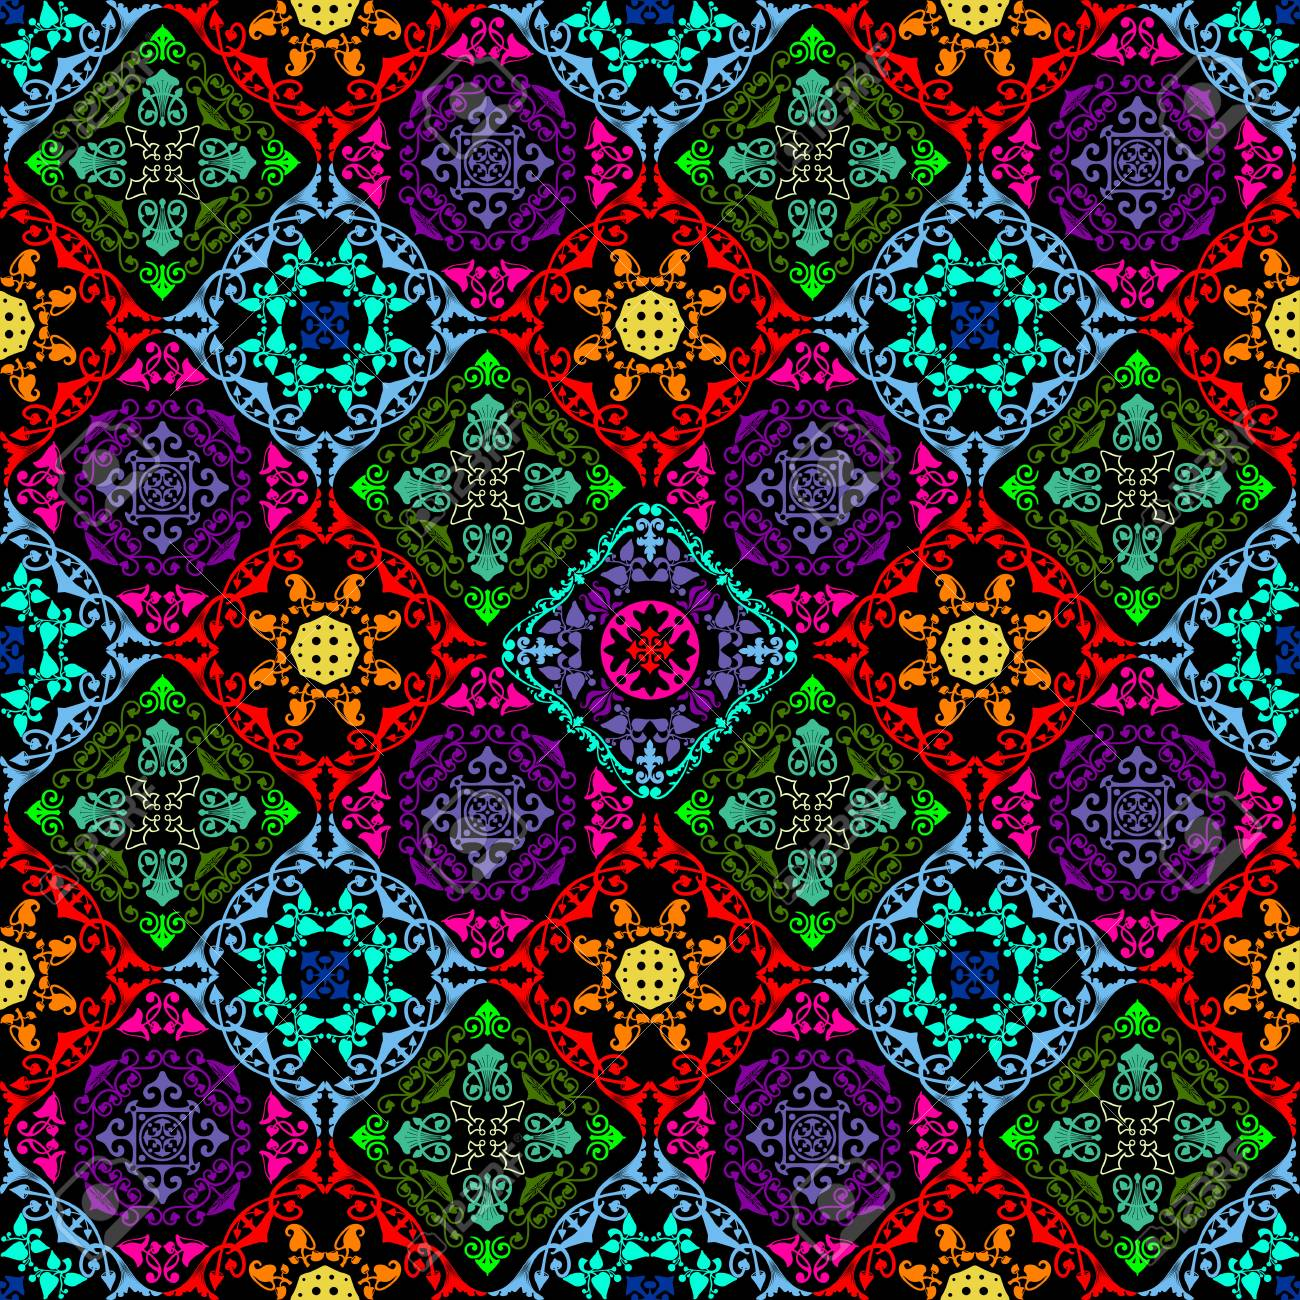 Fusion of old damask ornament with fluorescent colors and mushroom theme - 69053589